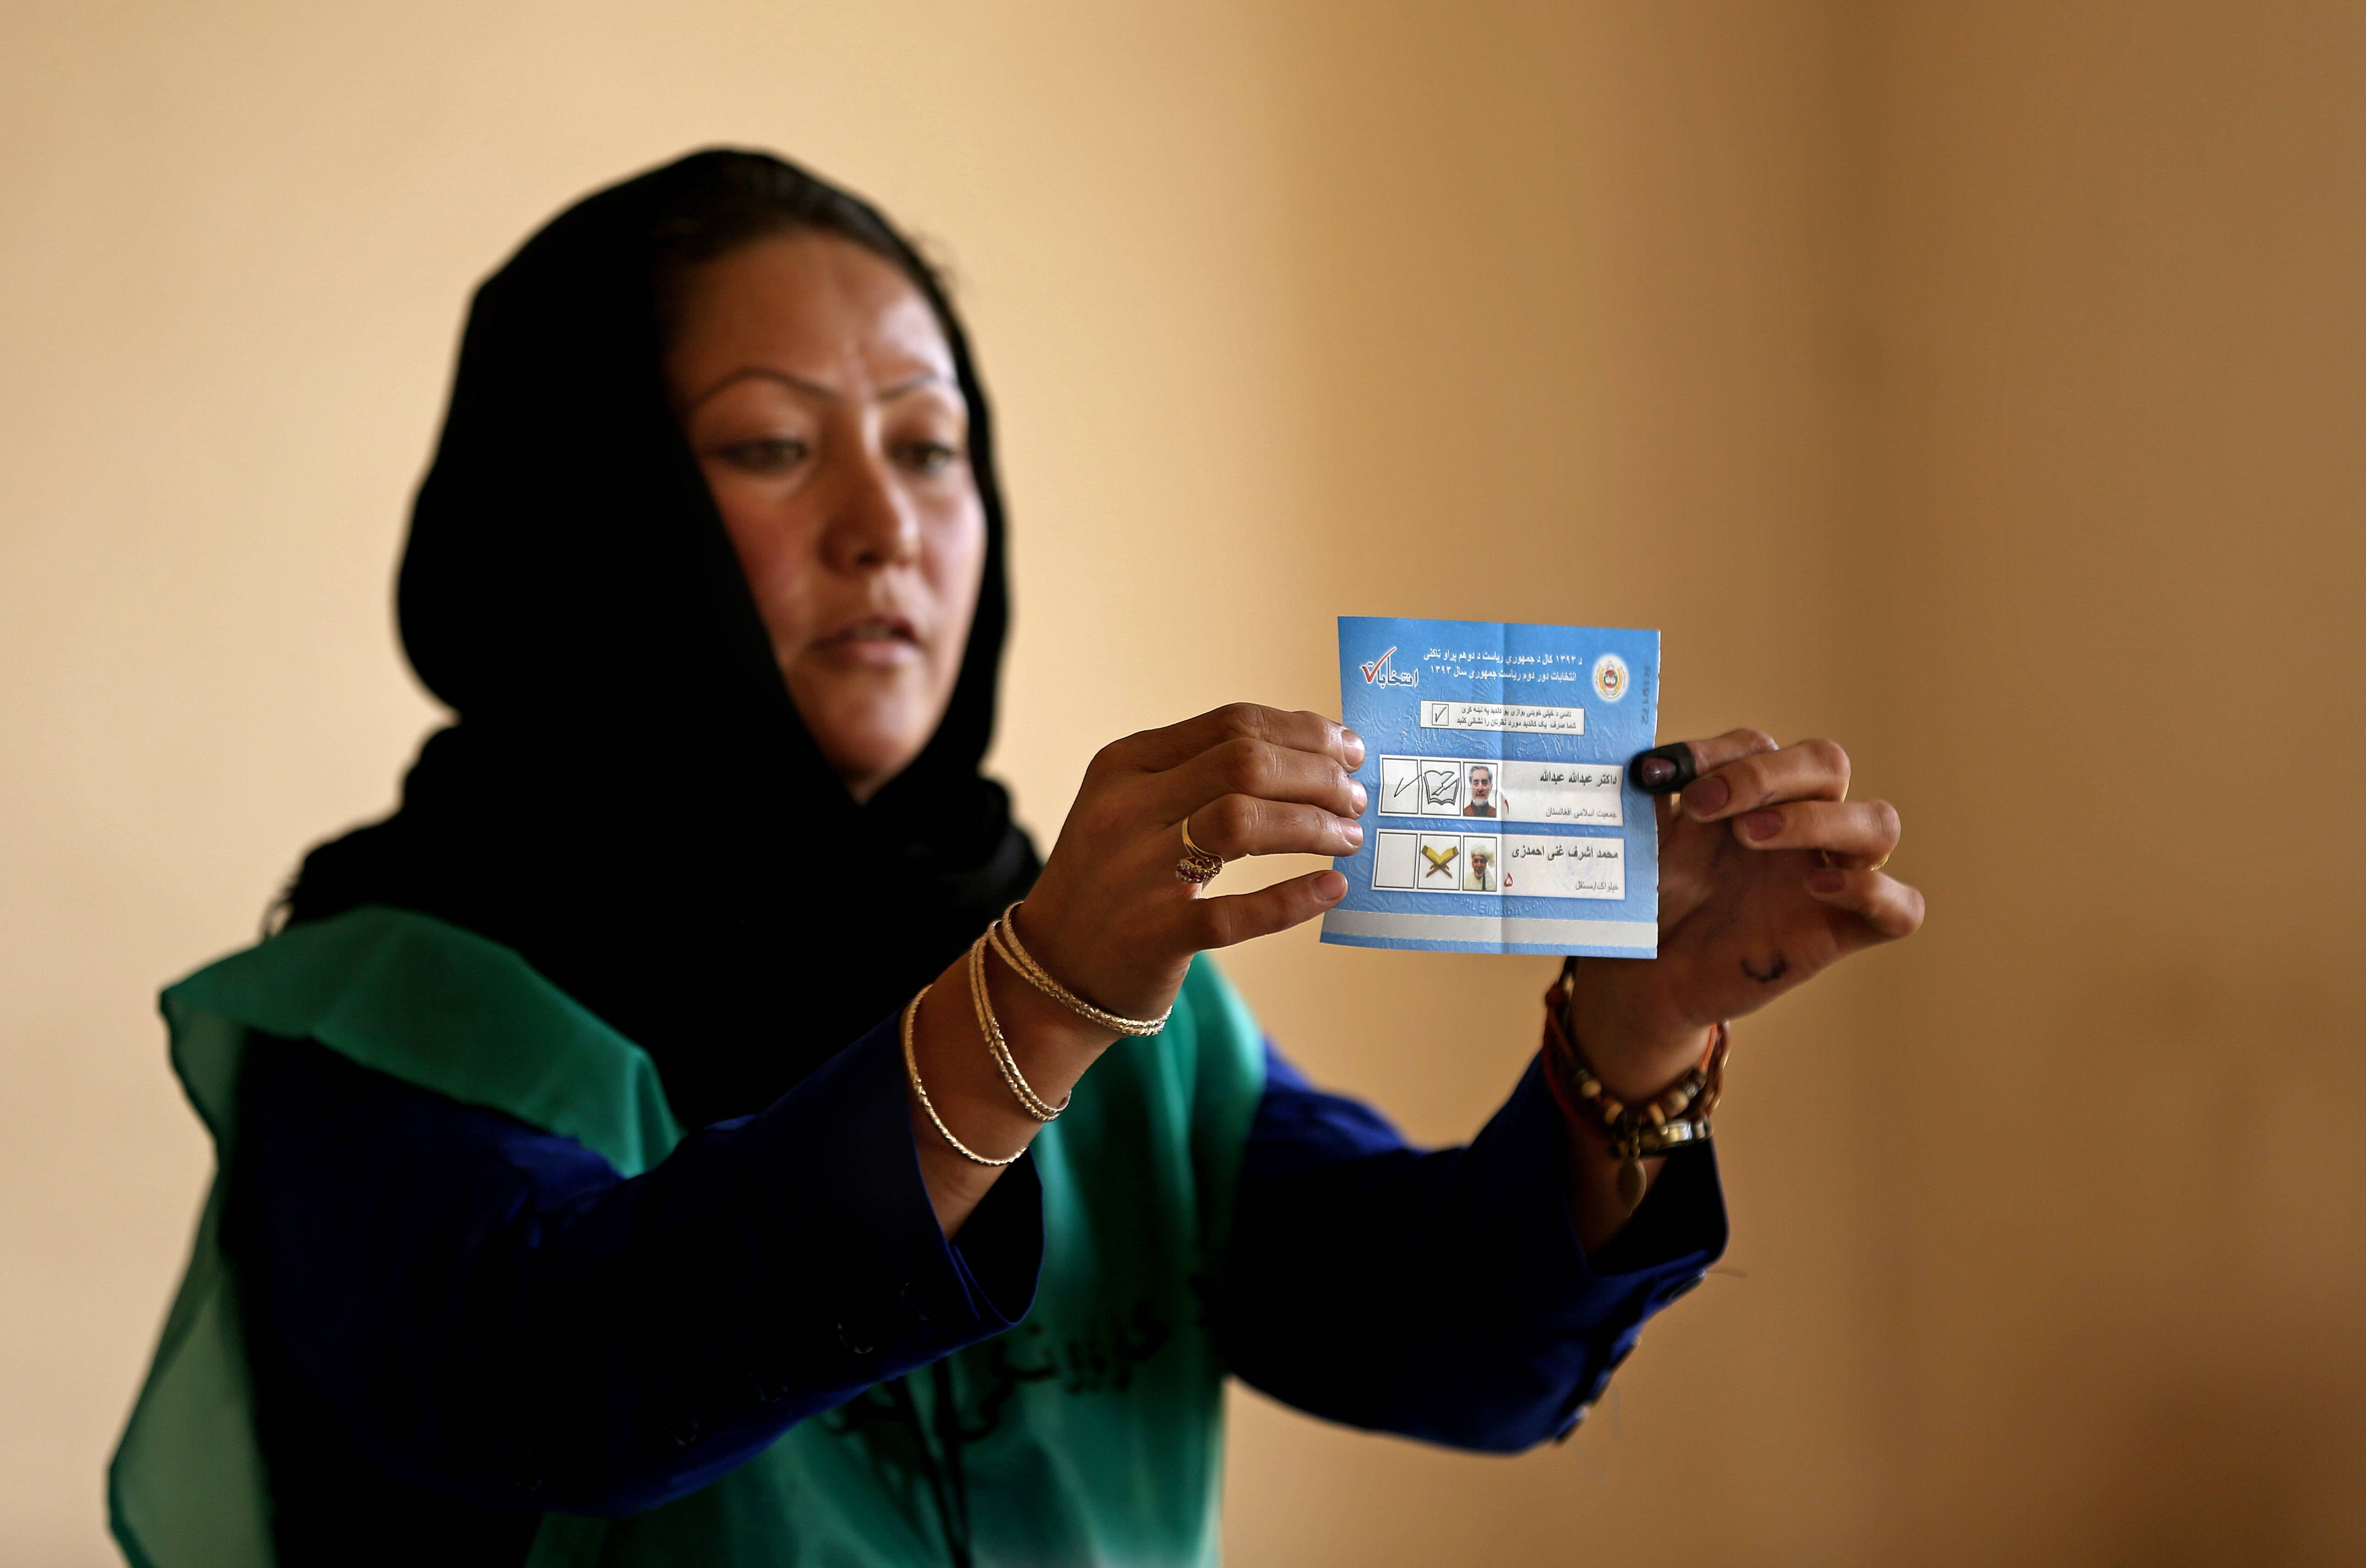 An Independent Election Commission (IEC) employee shows a ballot to observers Saturday at a polling station in Kabul, Afghanistan.